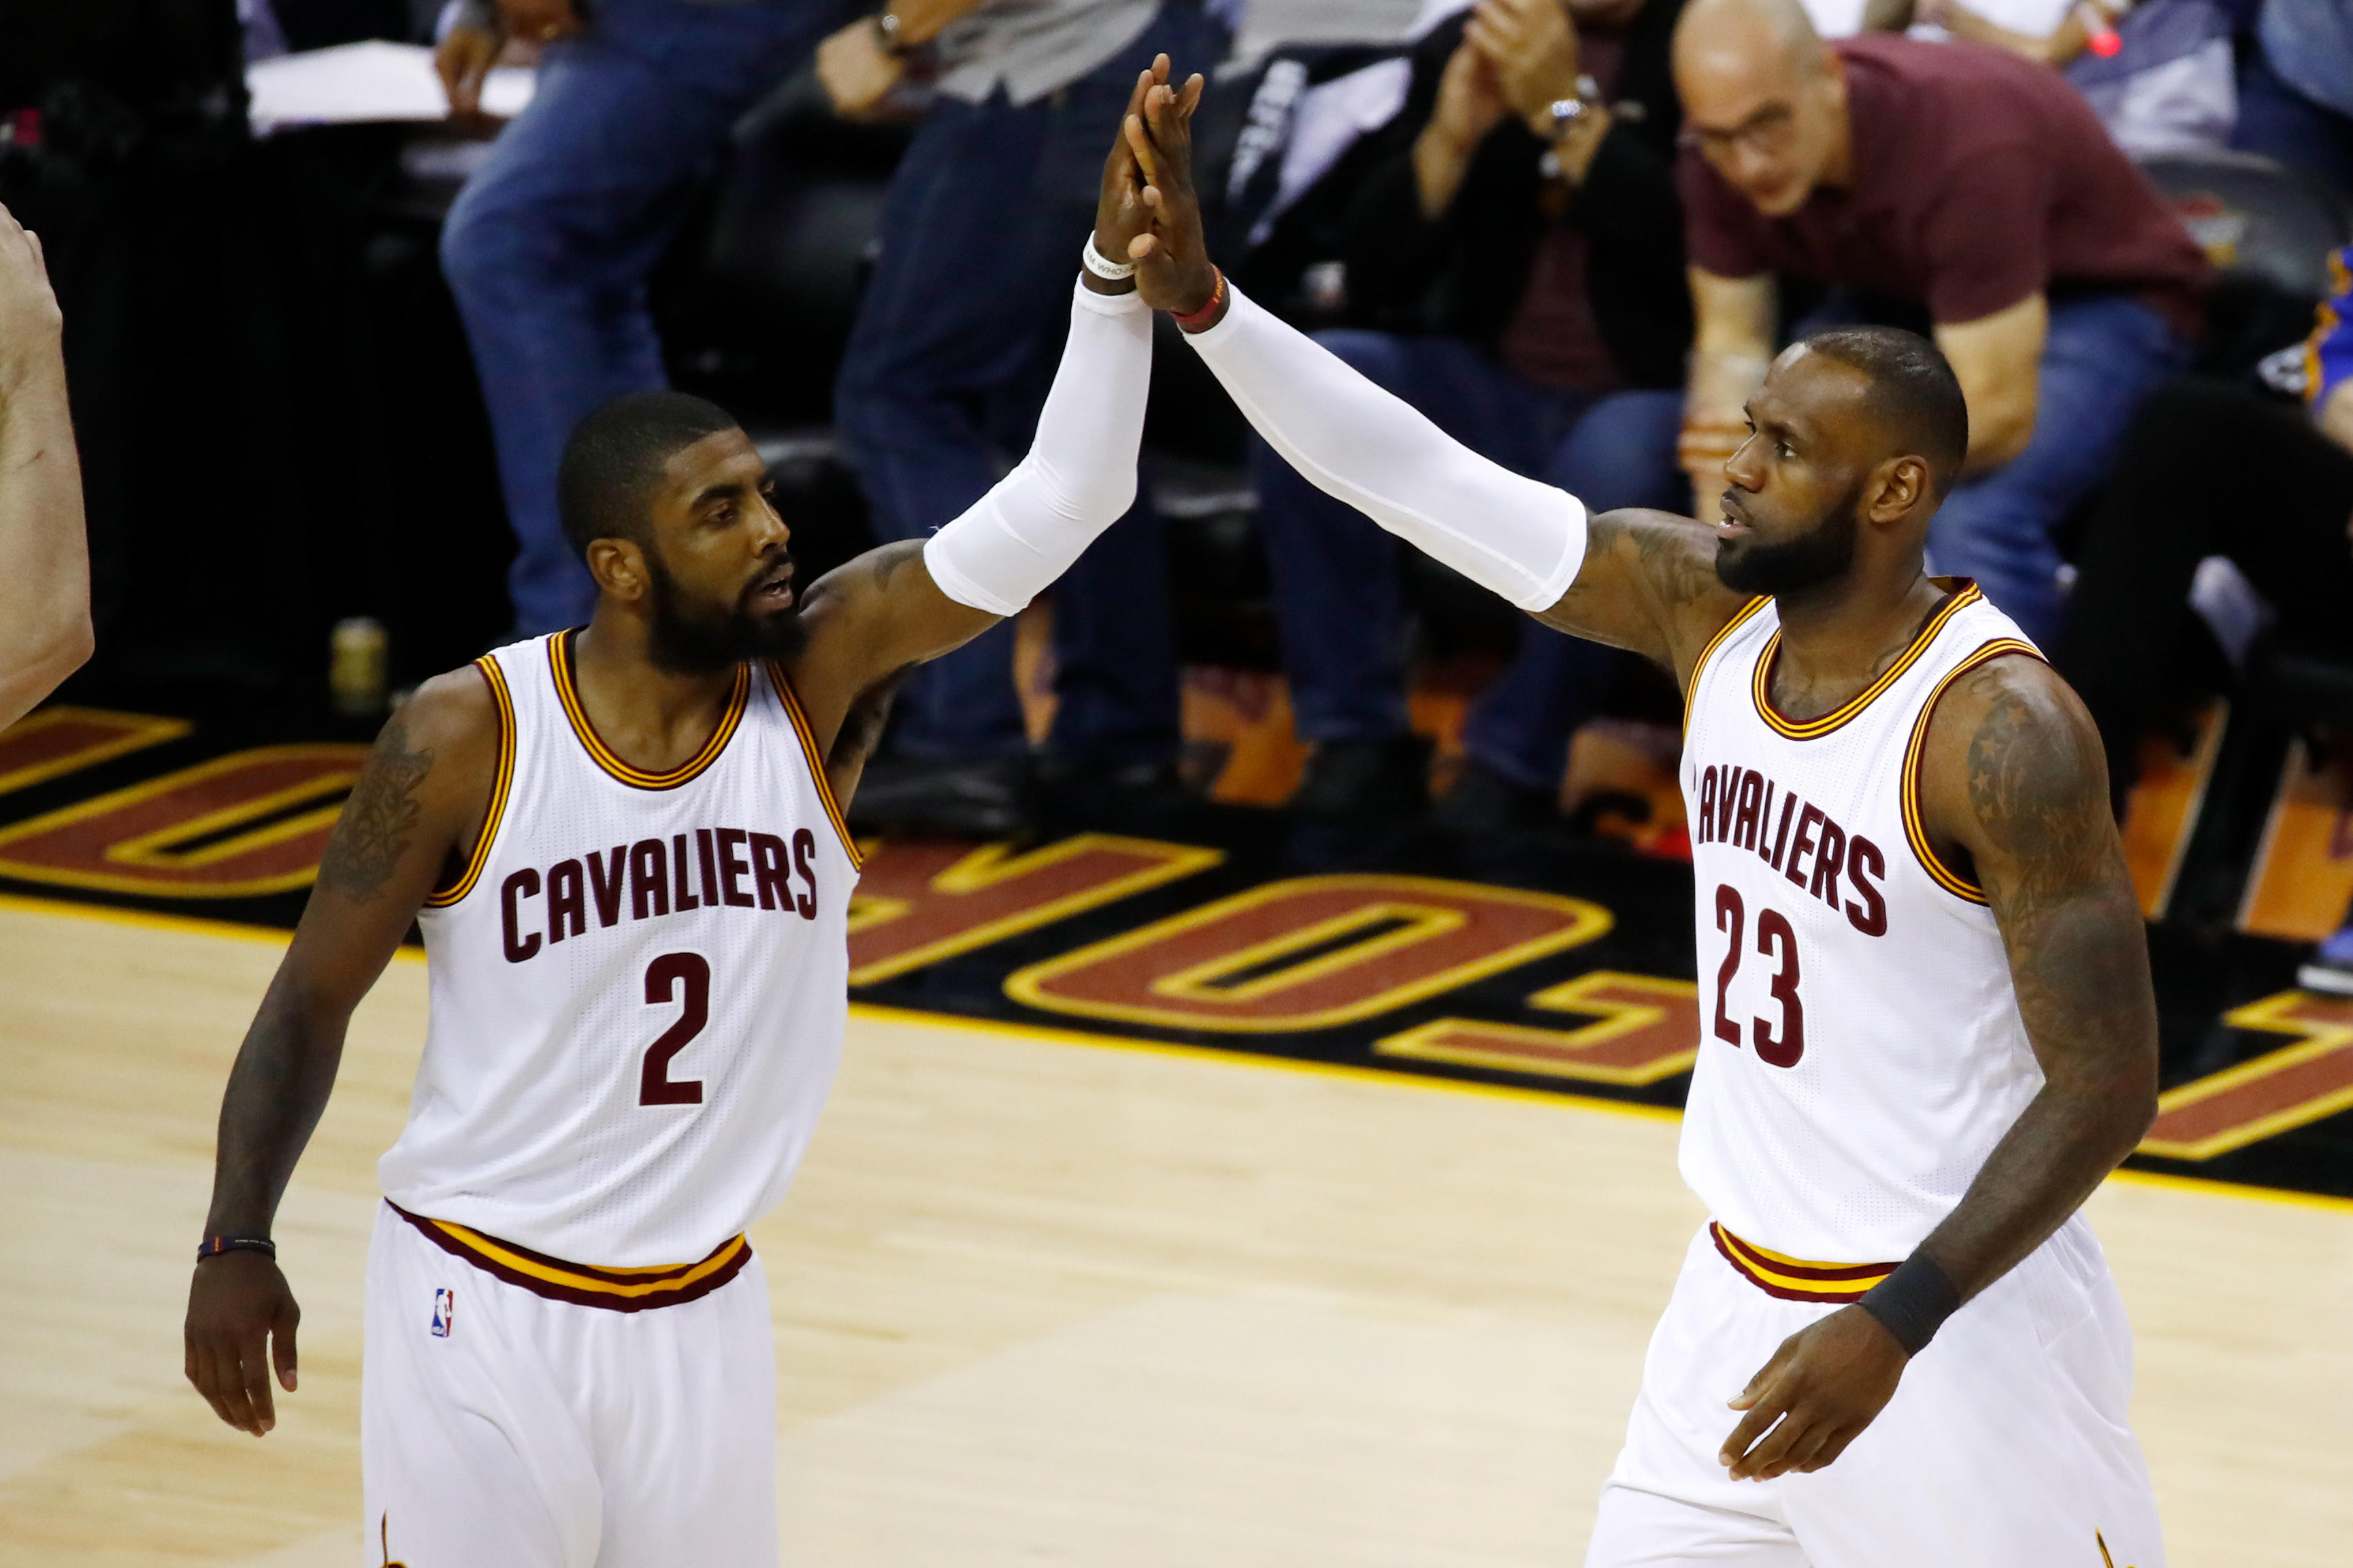 e6c1aee907e Kyrie Irving goes to Celtics after Cavaliers make blockbuster trade ...